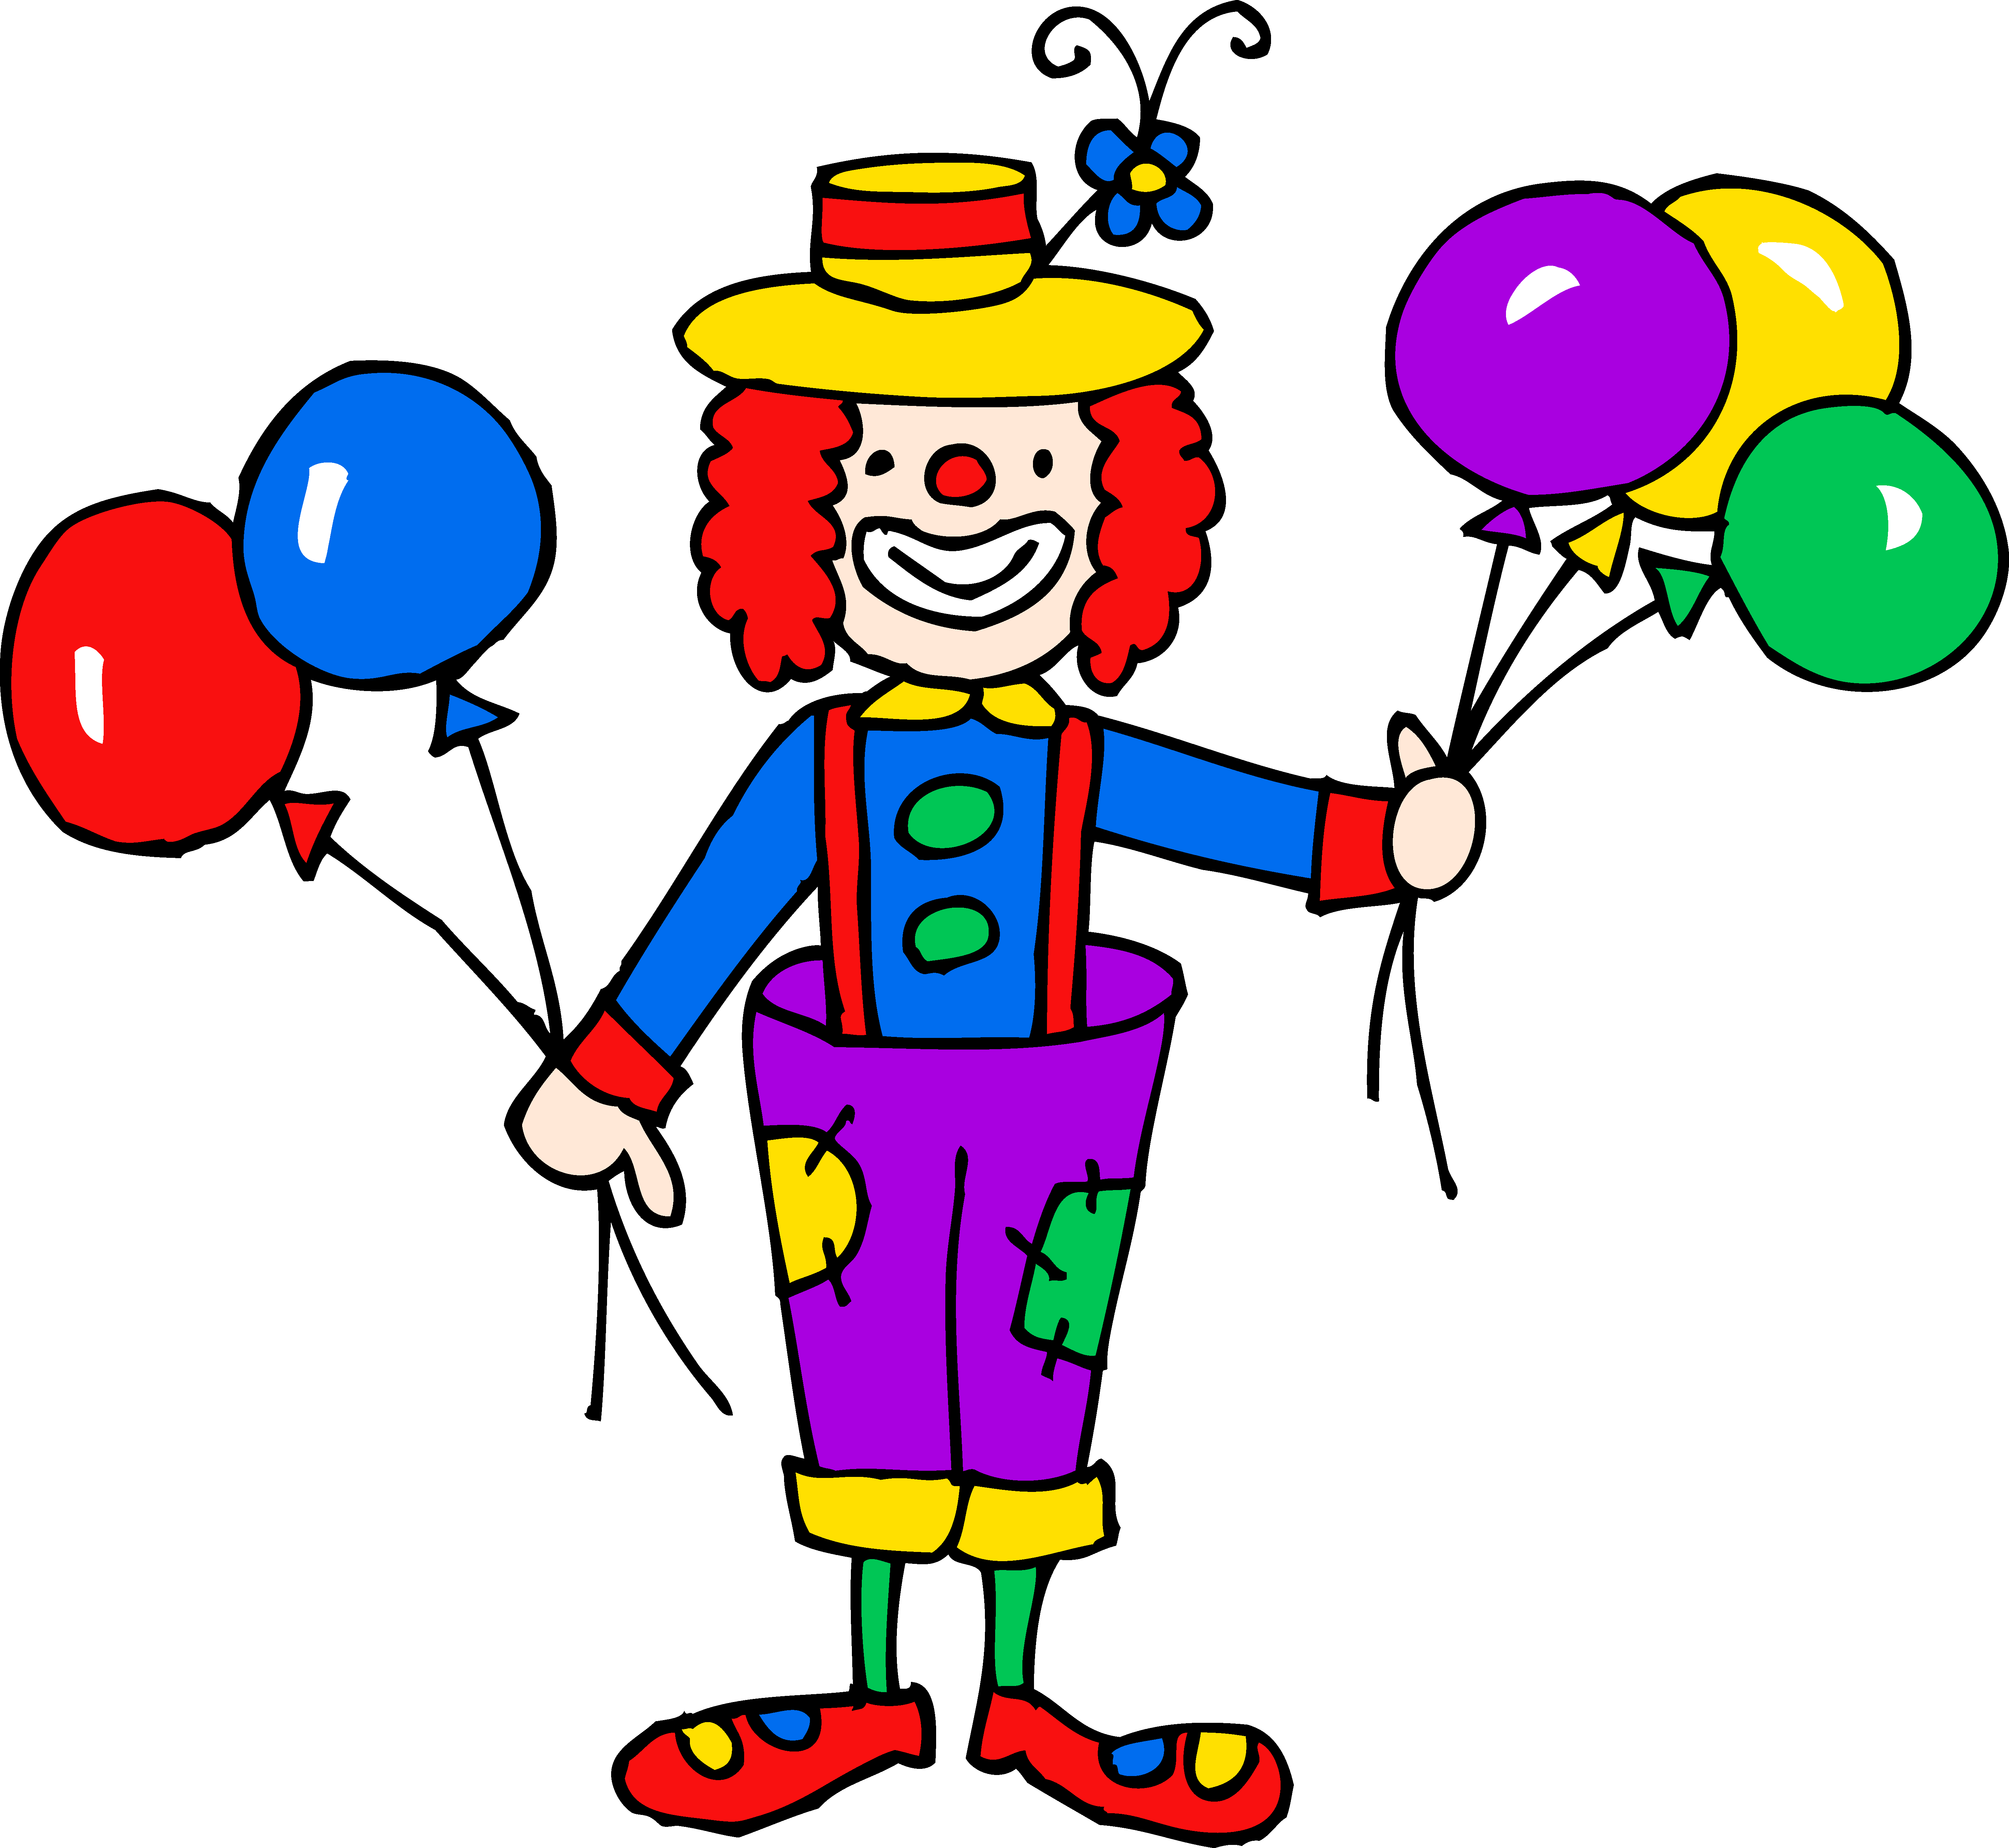 Cute colorful clown free. Sharing clipart understanding person vector black and white download